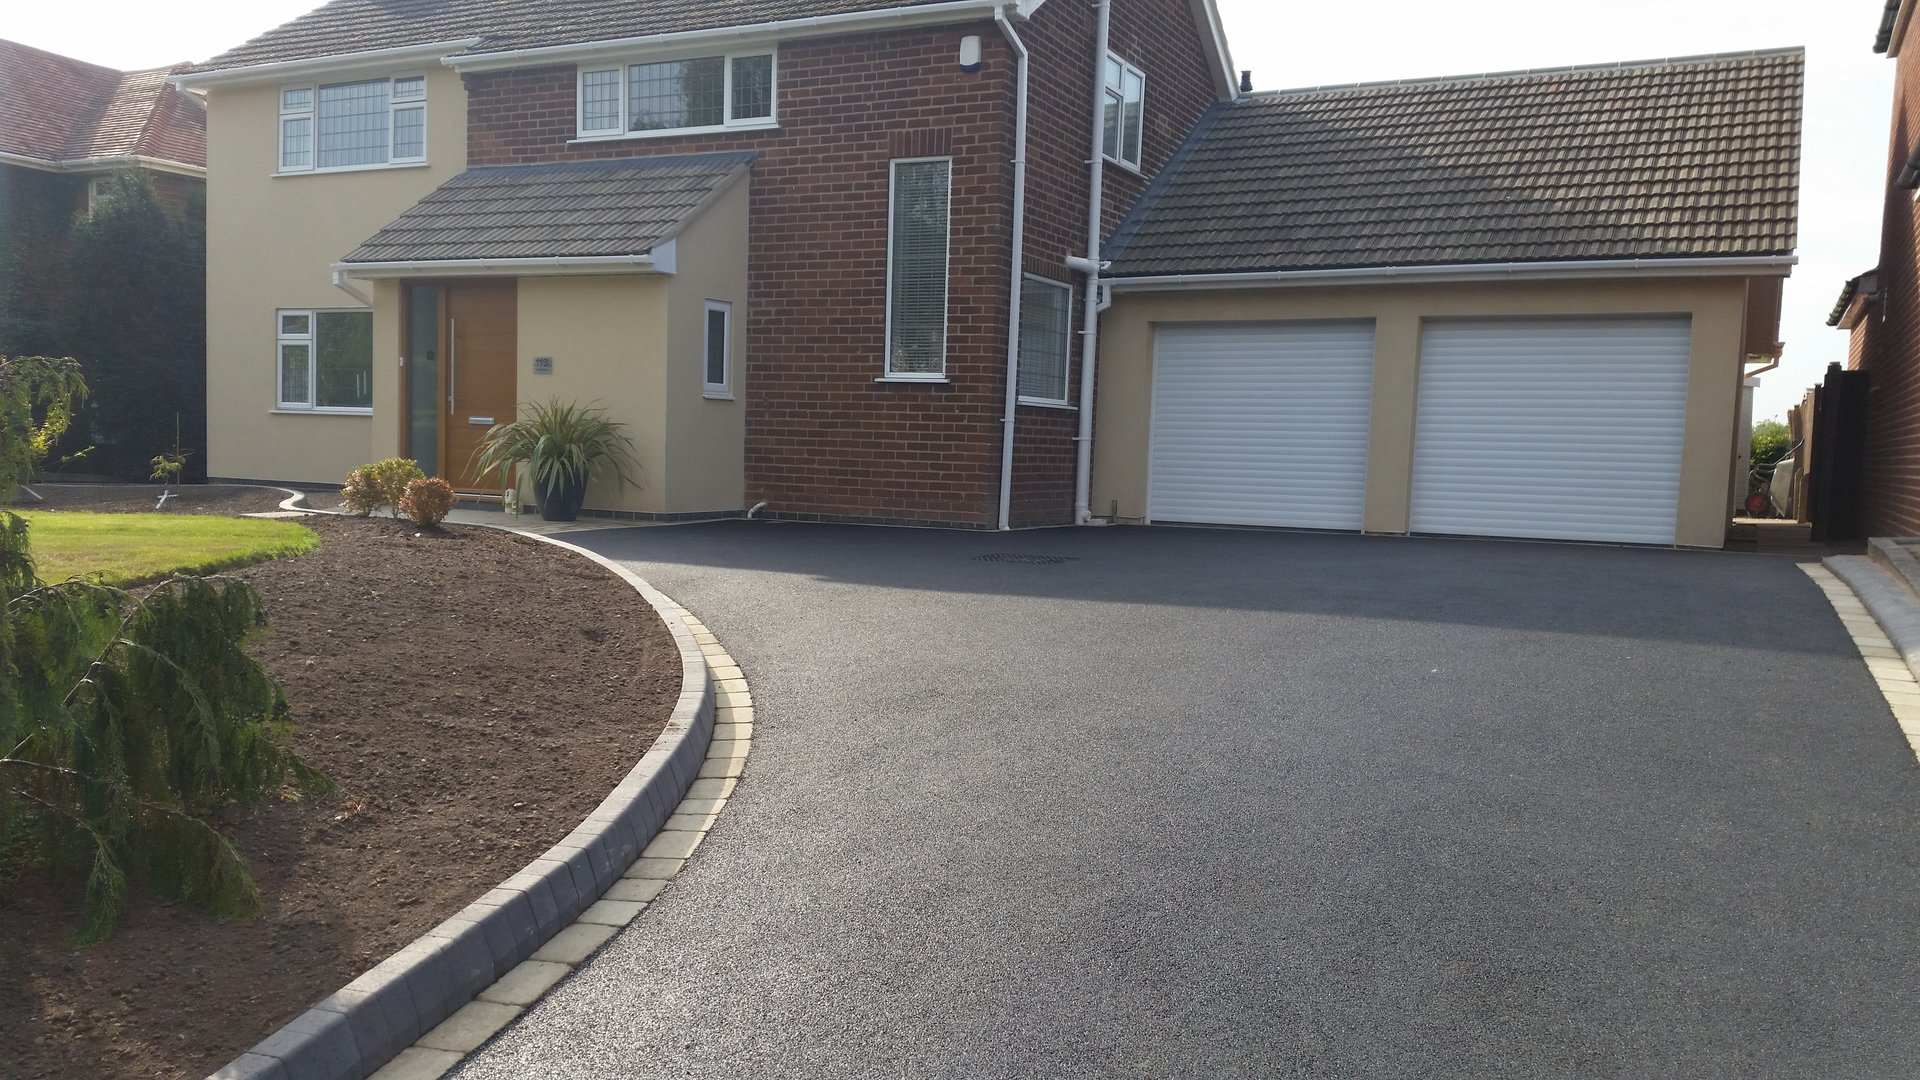 Lichfield Tarmacadam Domestic Surfacing Experts